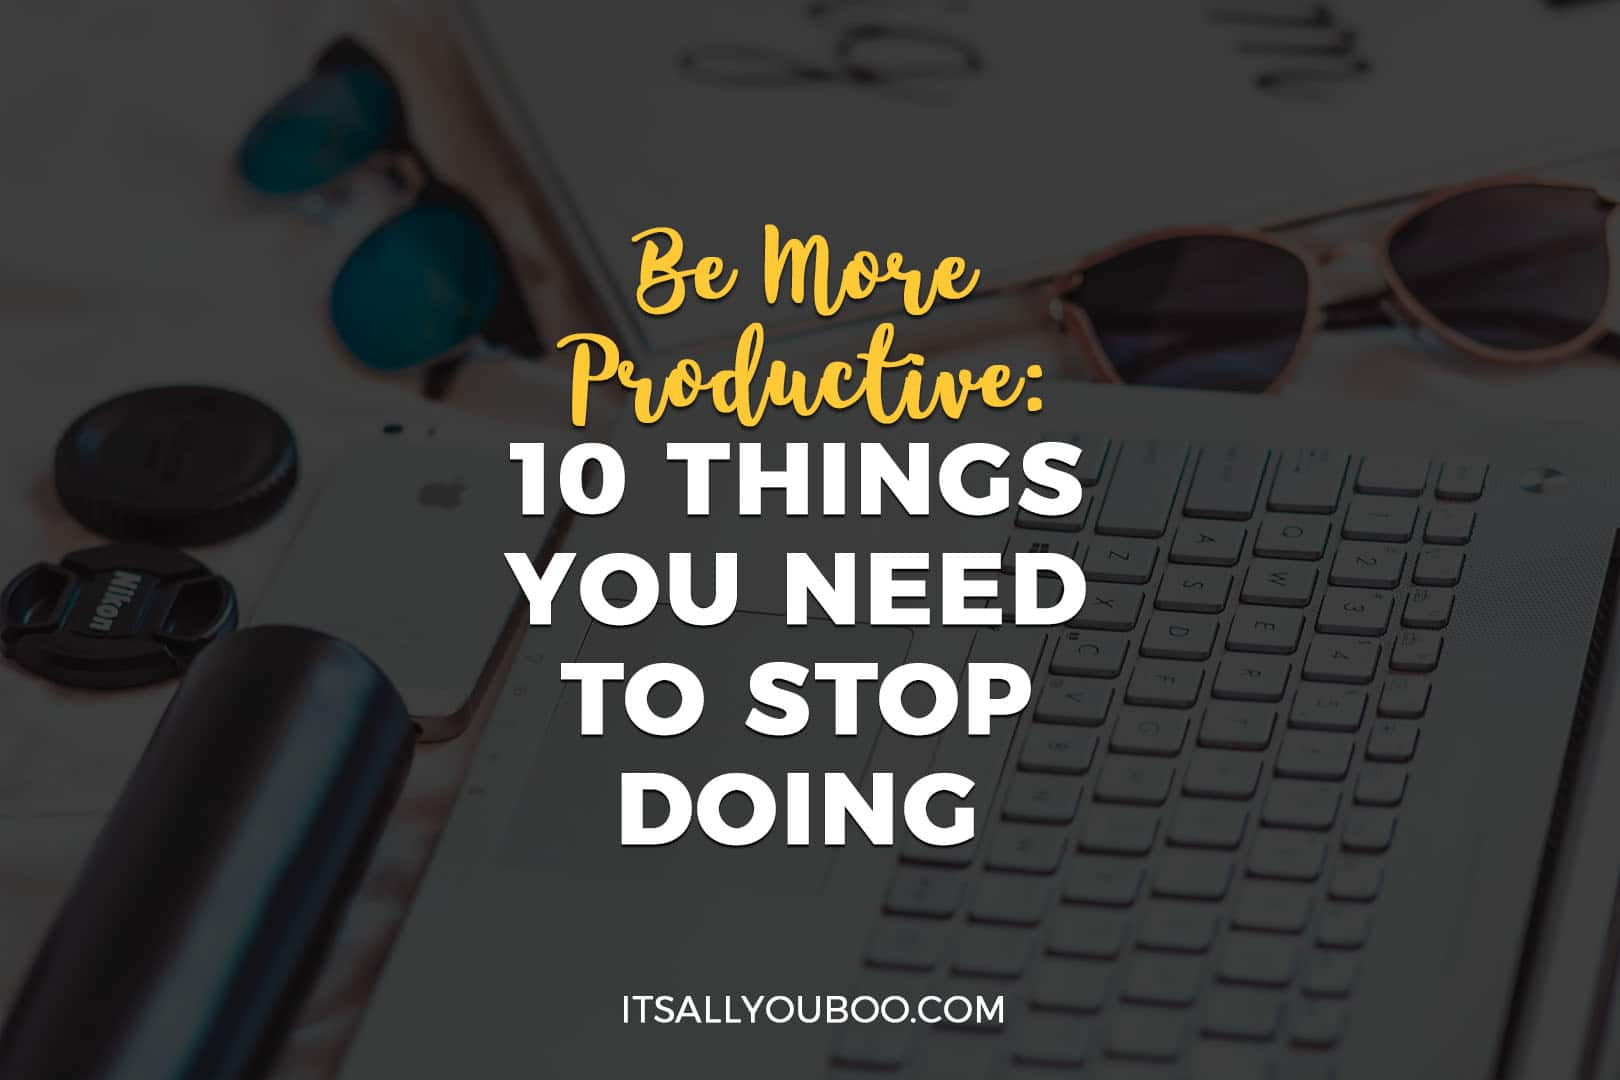 Be More Productive: 10 Things You Need to Stop Doing